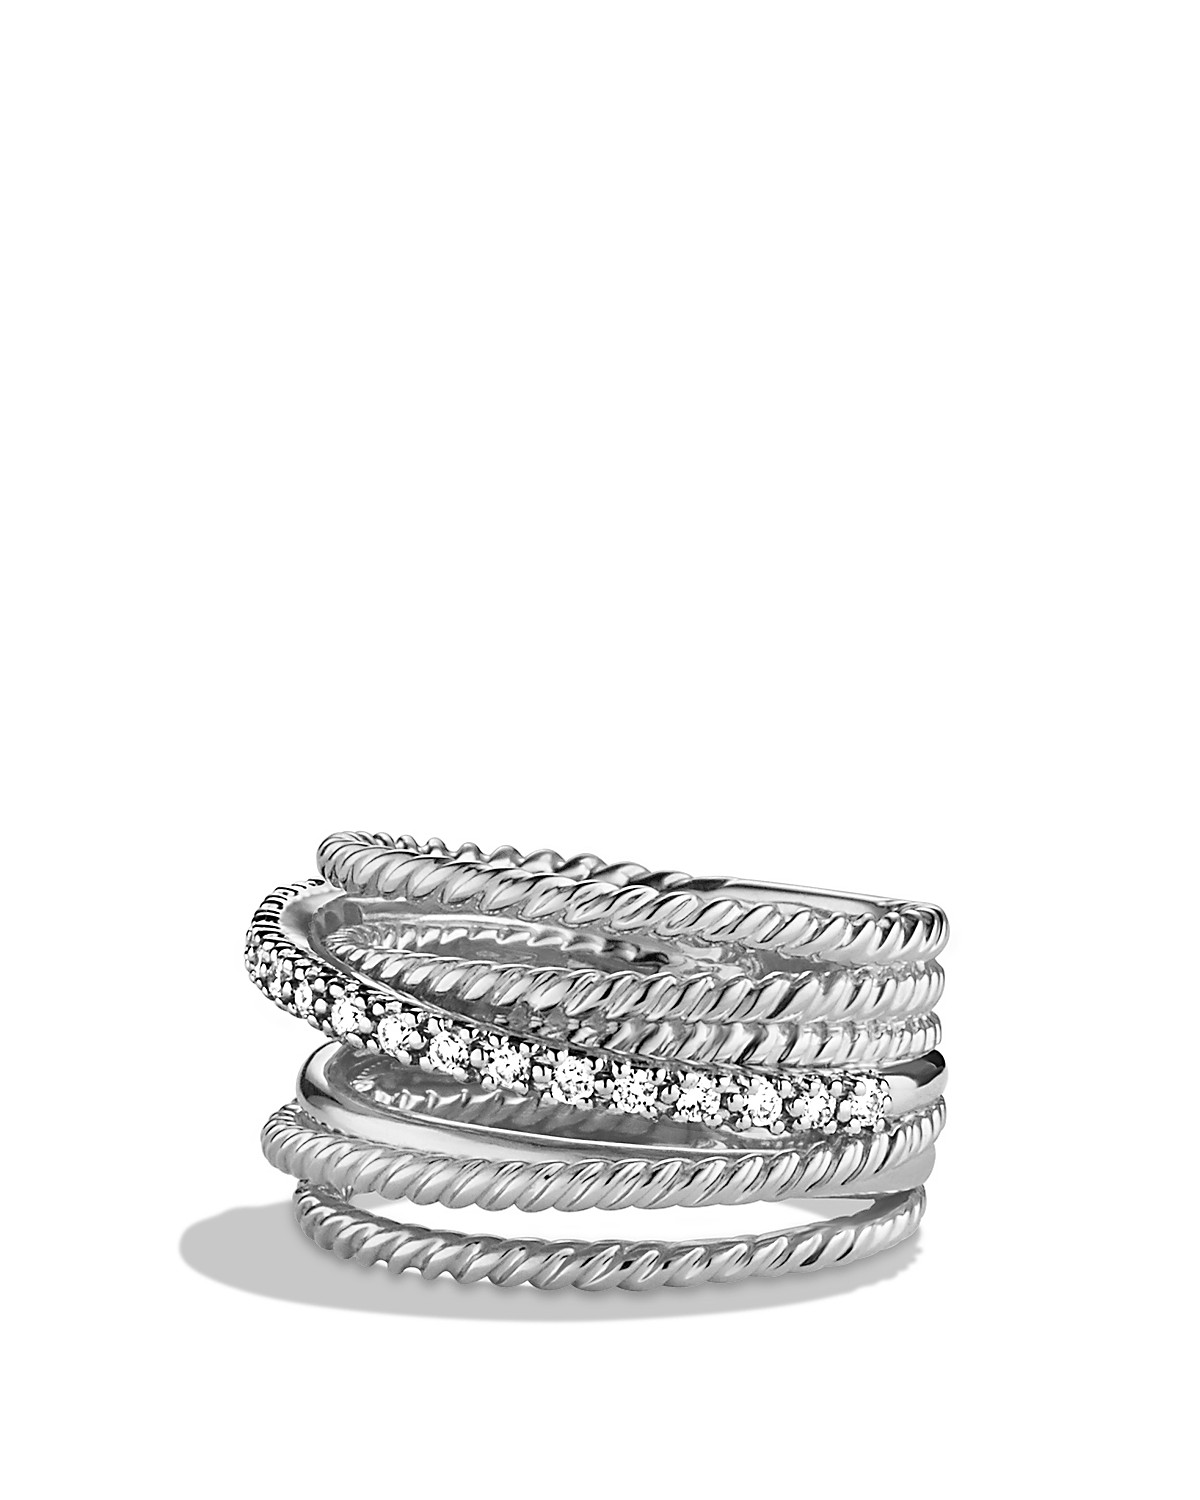 rings bracelets how spot blog stamping authentic jewelry yurman david coutureusa to identify